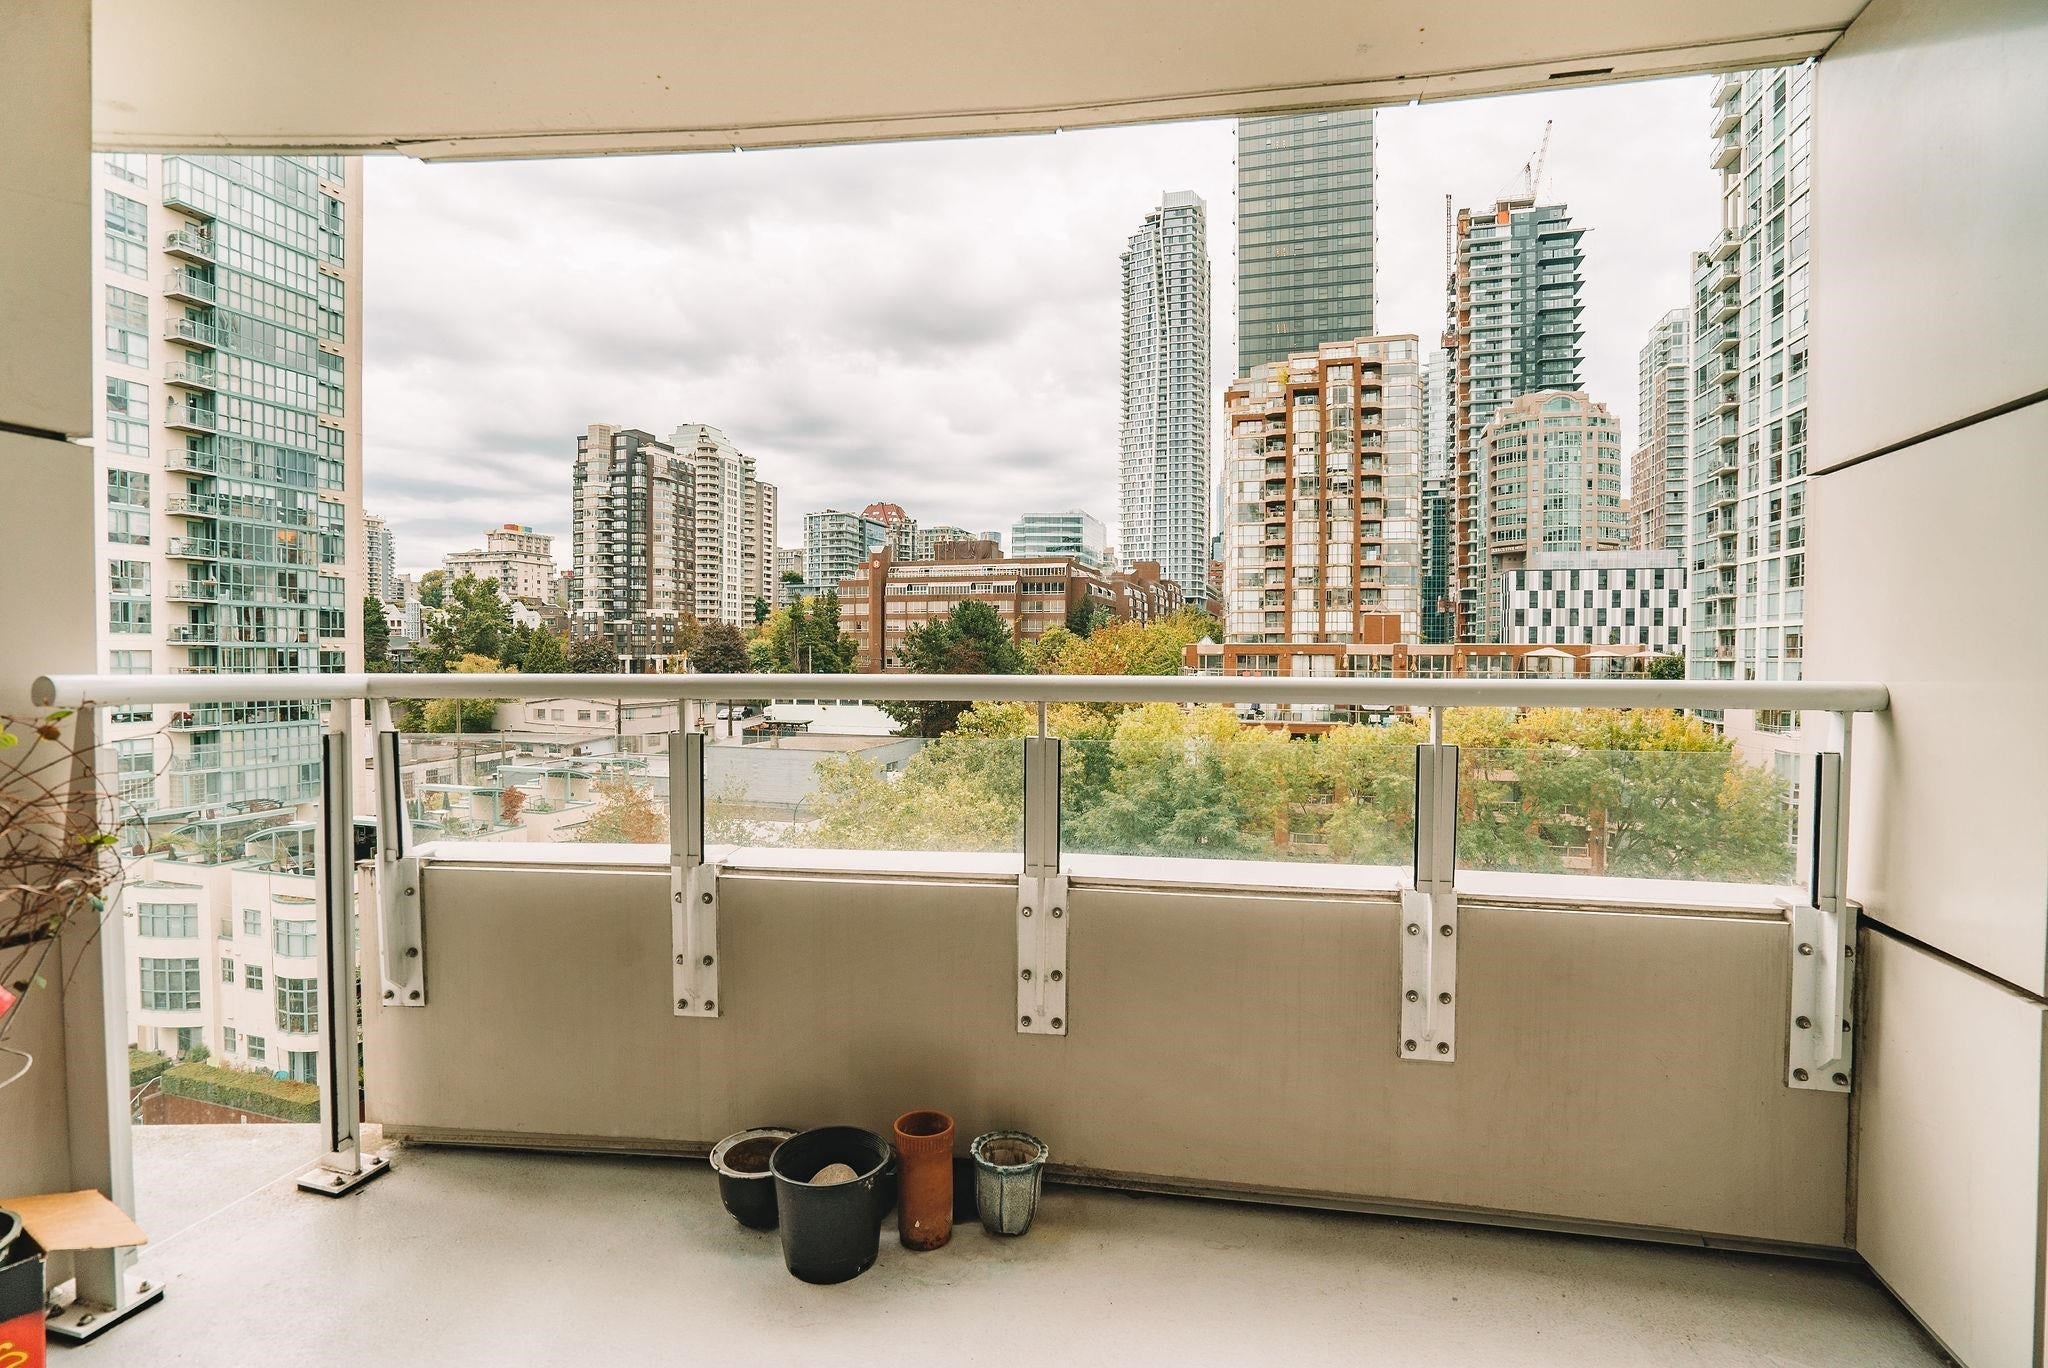 1009 1500 HORNBY STREET - Yaletown Apartment/Condo for sale, 2 Bedrooms (R2617441) - #10